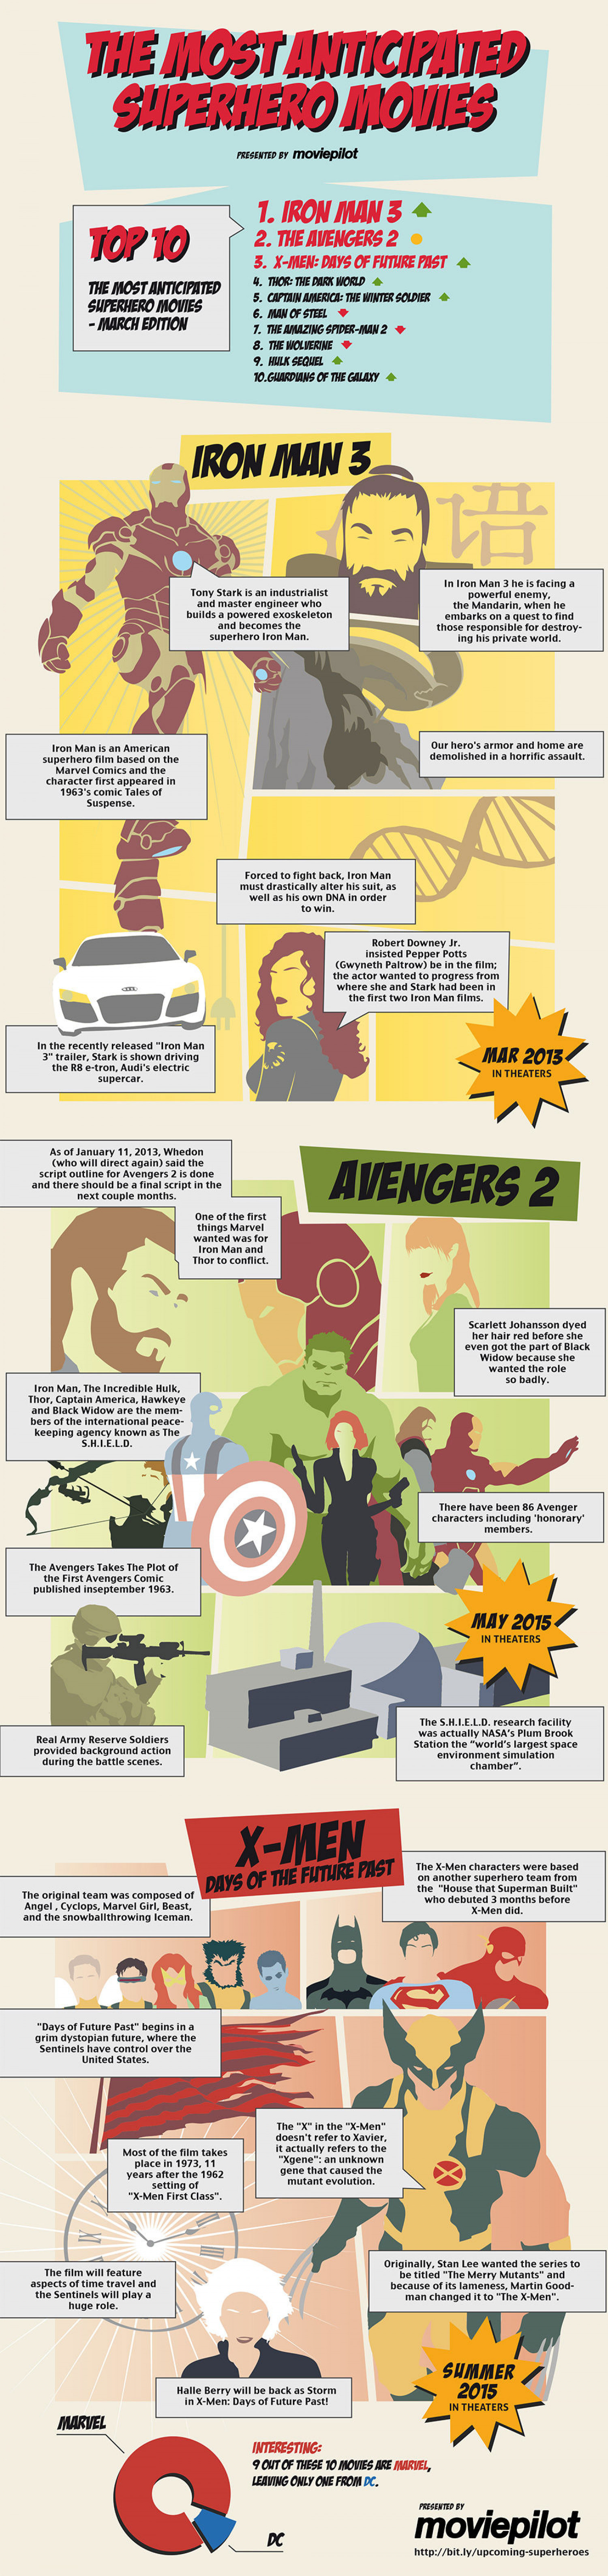 The Most Anticipated Superhero Movie Infographic